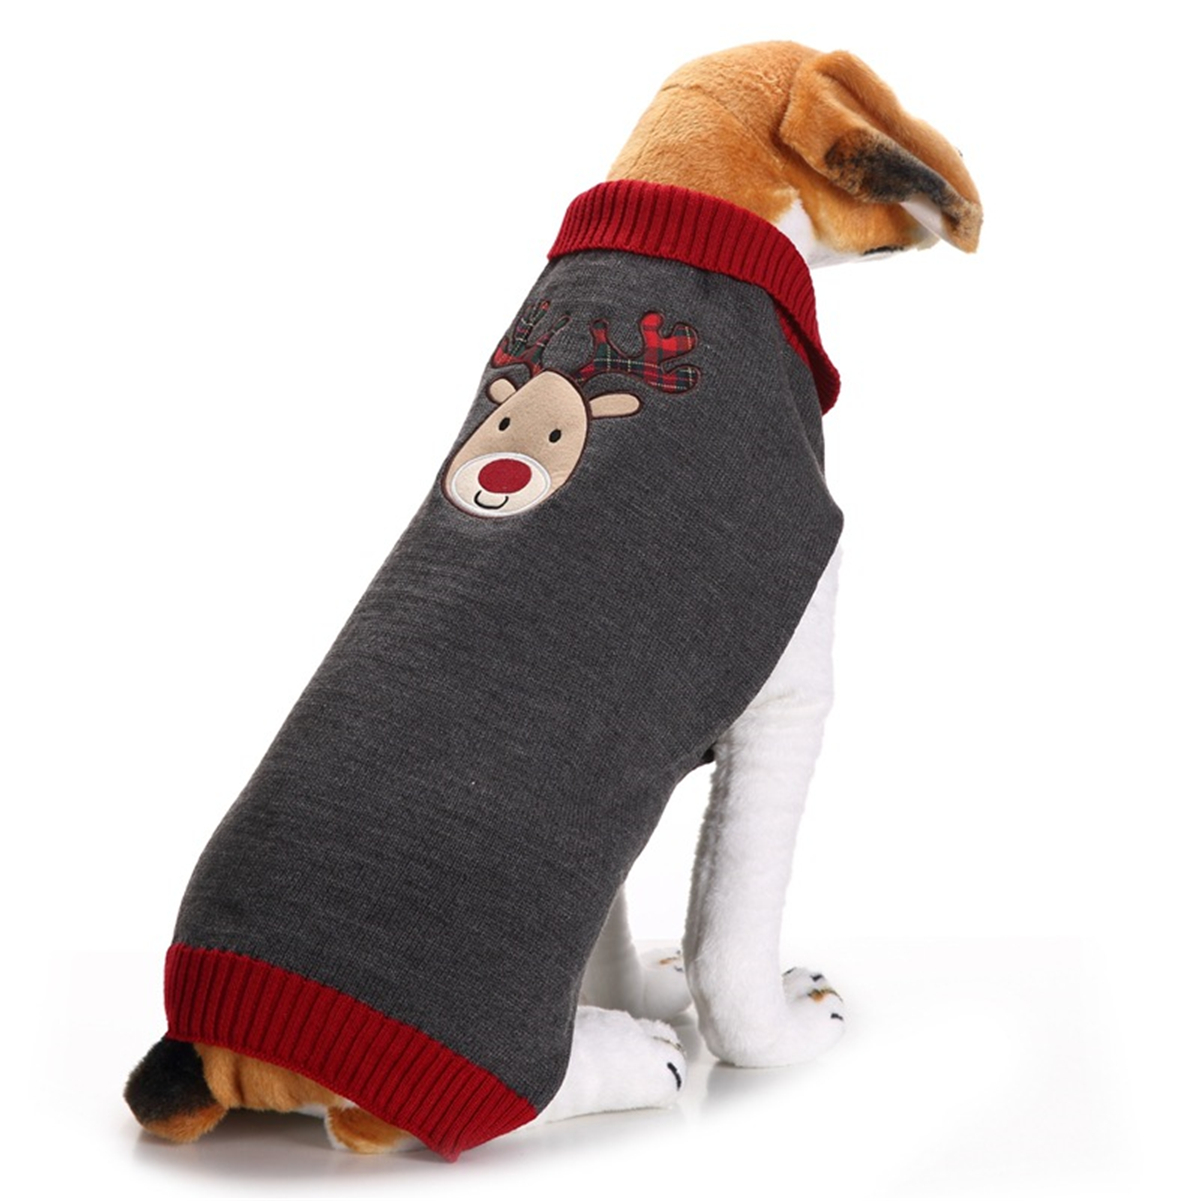 Raking Christmas Knitted Cotton Dog Hoody Turtleneck Sweater Jumper Costume Clothes Apparel Outfit M, Santa Claus